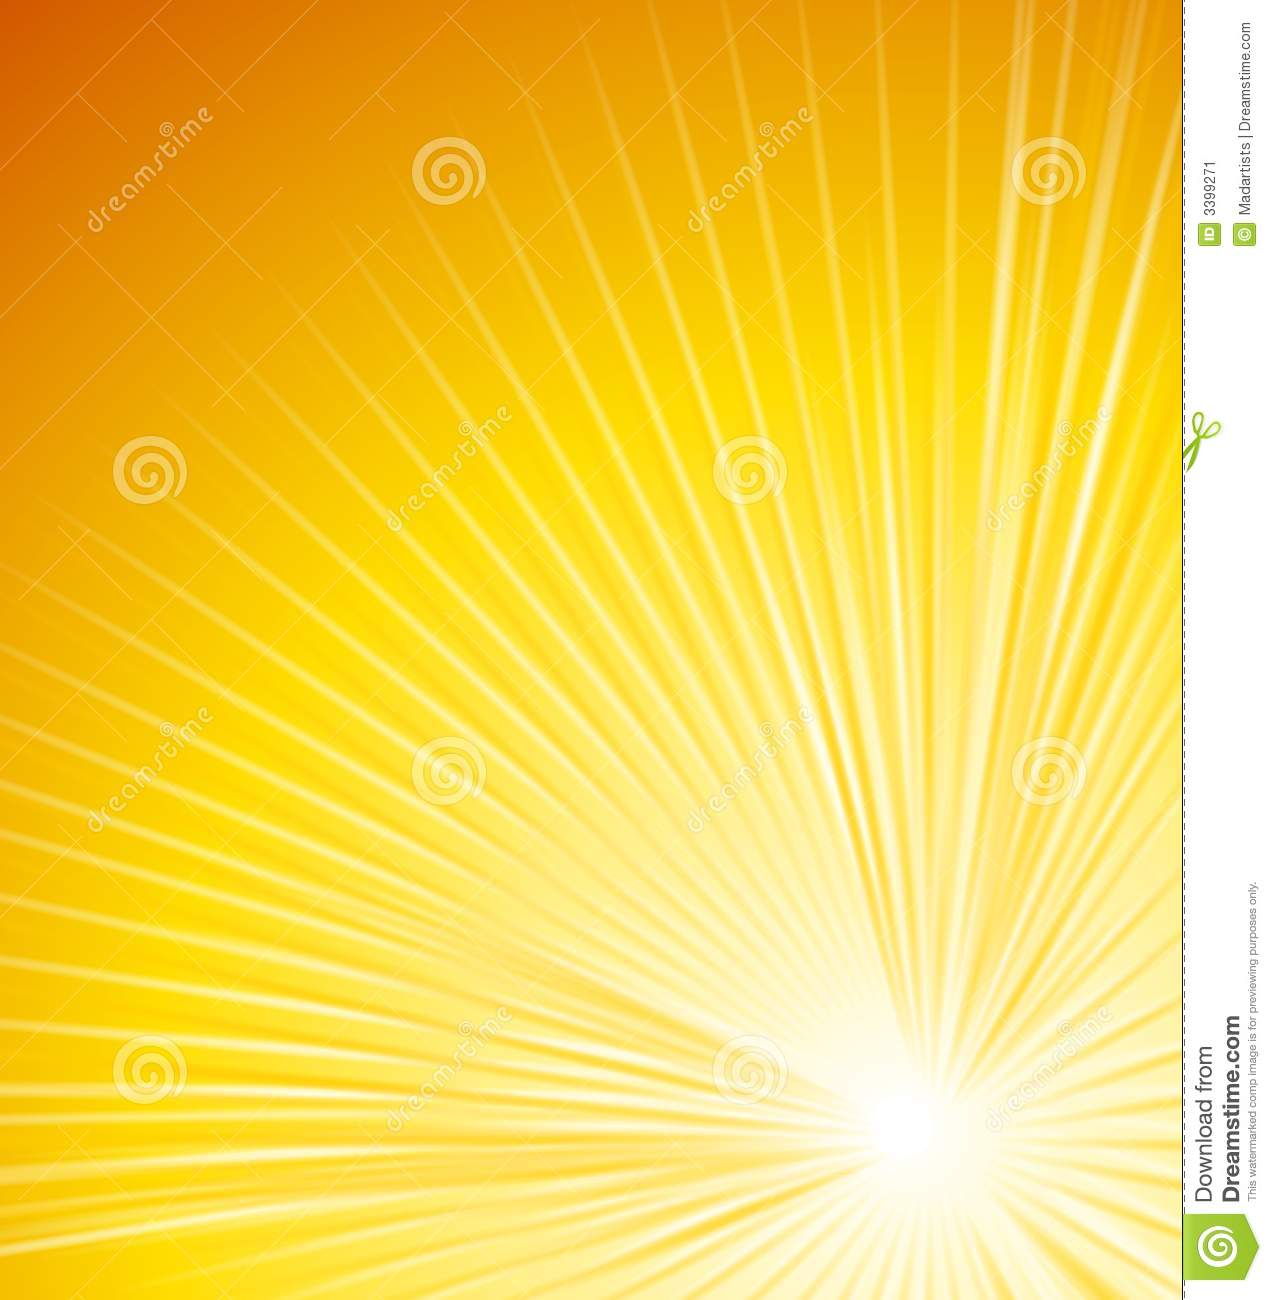 Rays Of Light Glowing Lines 2 Stock Image.